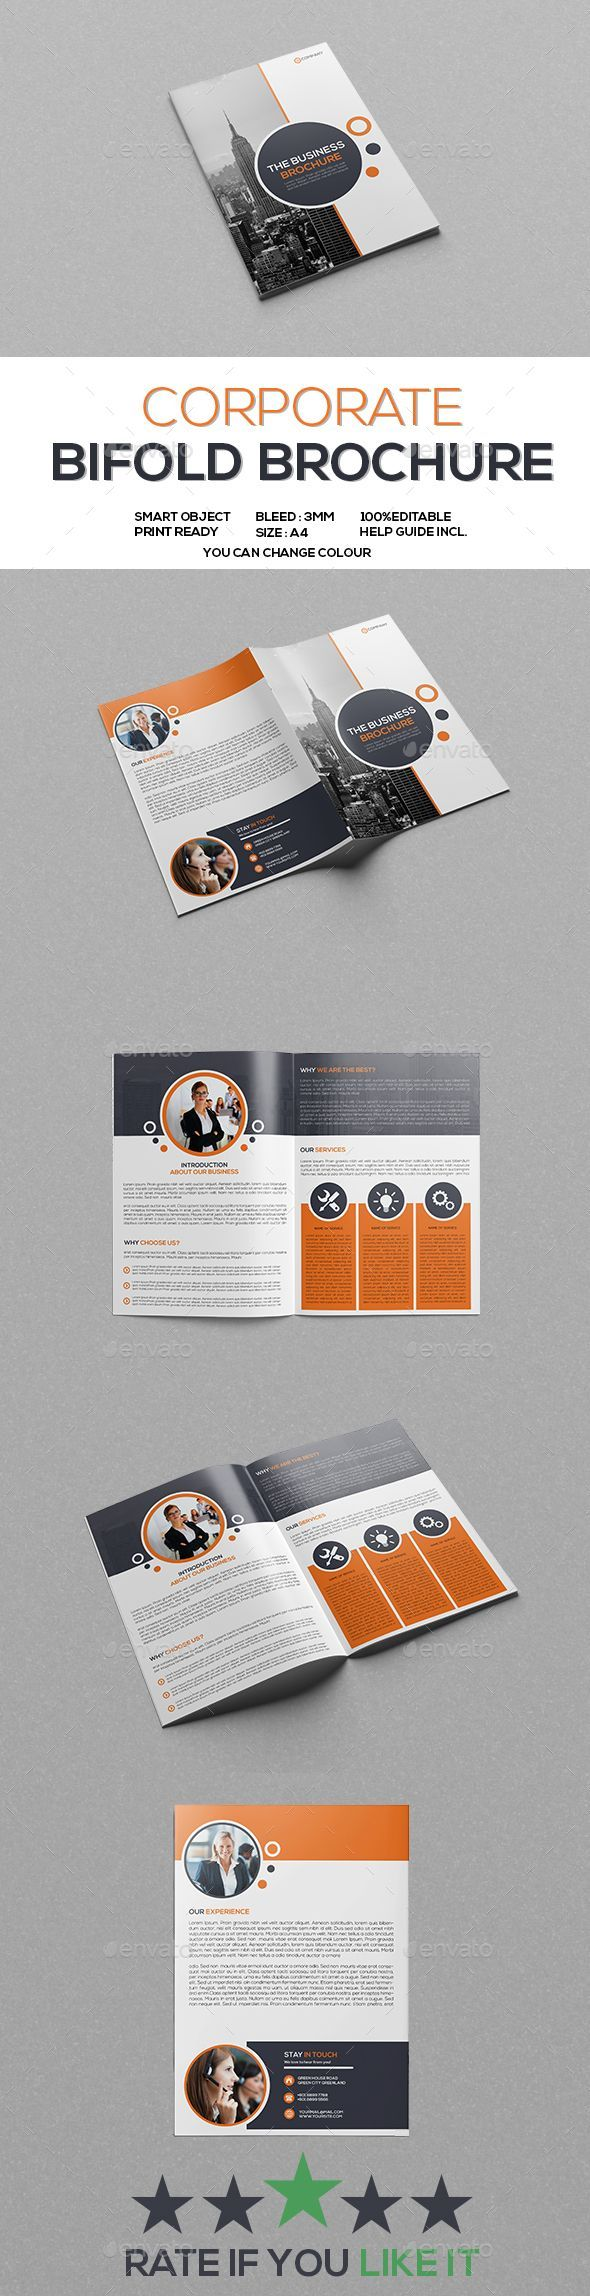 Corporate Bifold Brochure Corporate Bifold Brochure Template. Best for promoting...